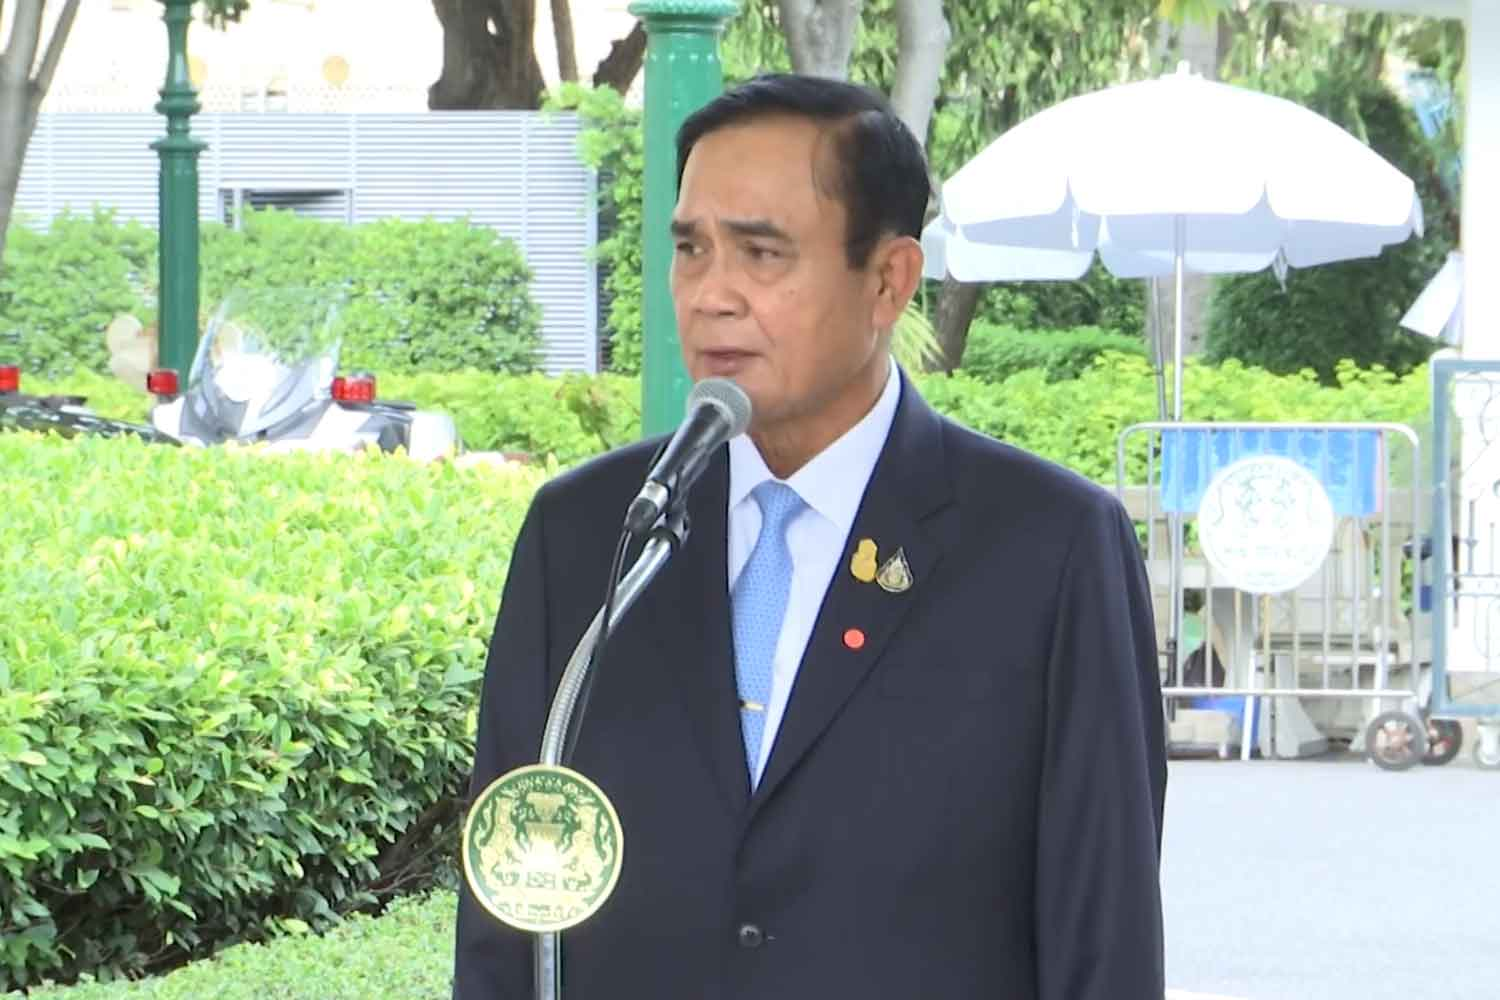 Prime Minister Prayut Chan-o-cha answers questions at Government House about the  anti-government demonstration planned for inner Bangkok this weekend. (Photo:  Government House Facebook page)